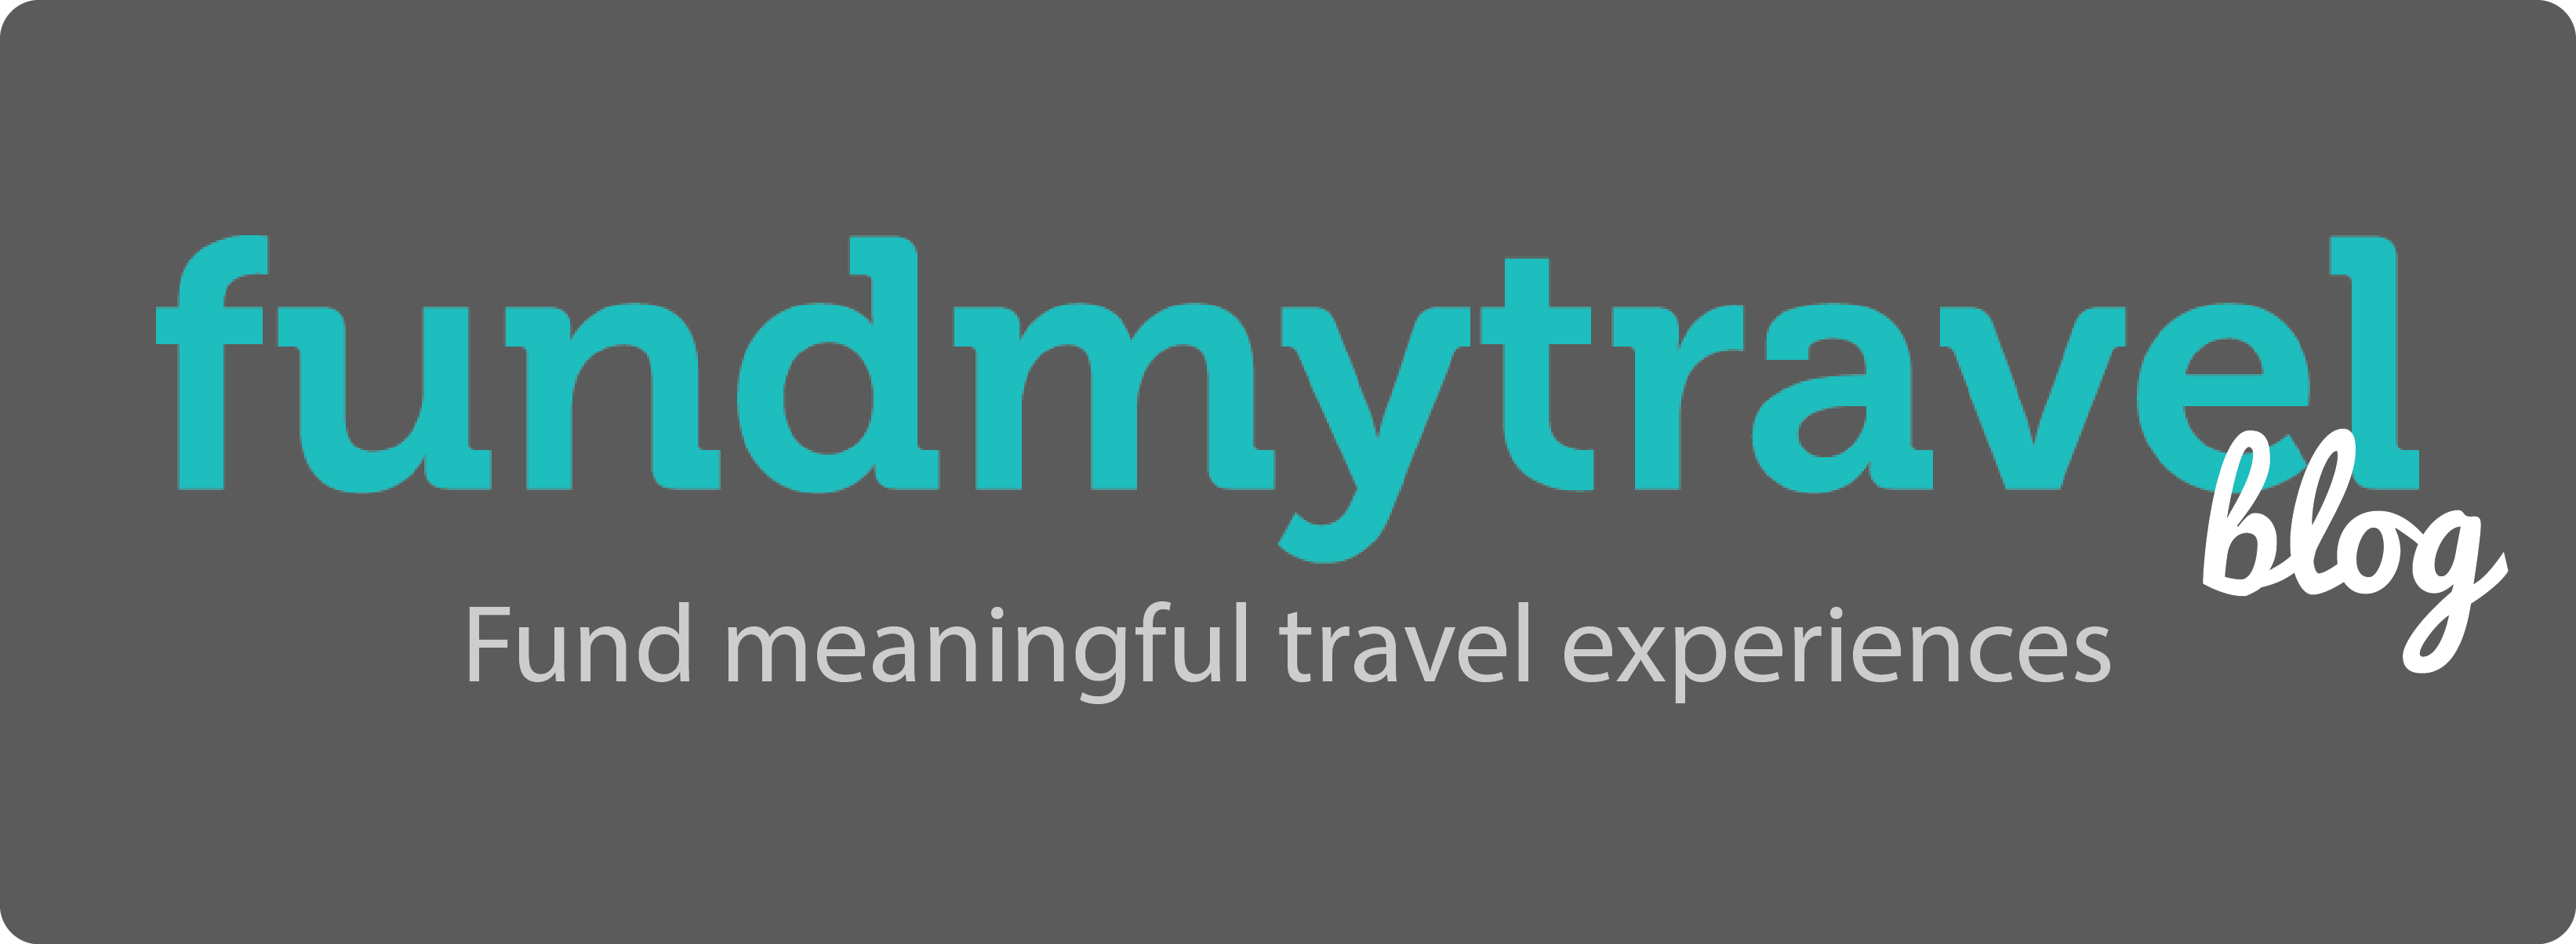 The FundMyTravel Blog